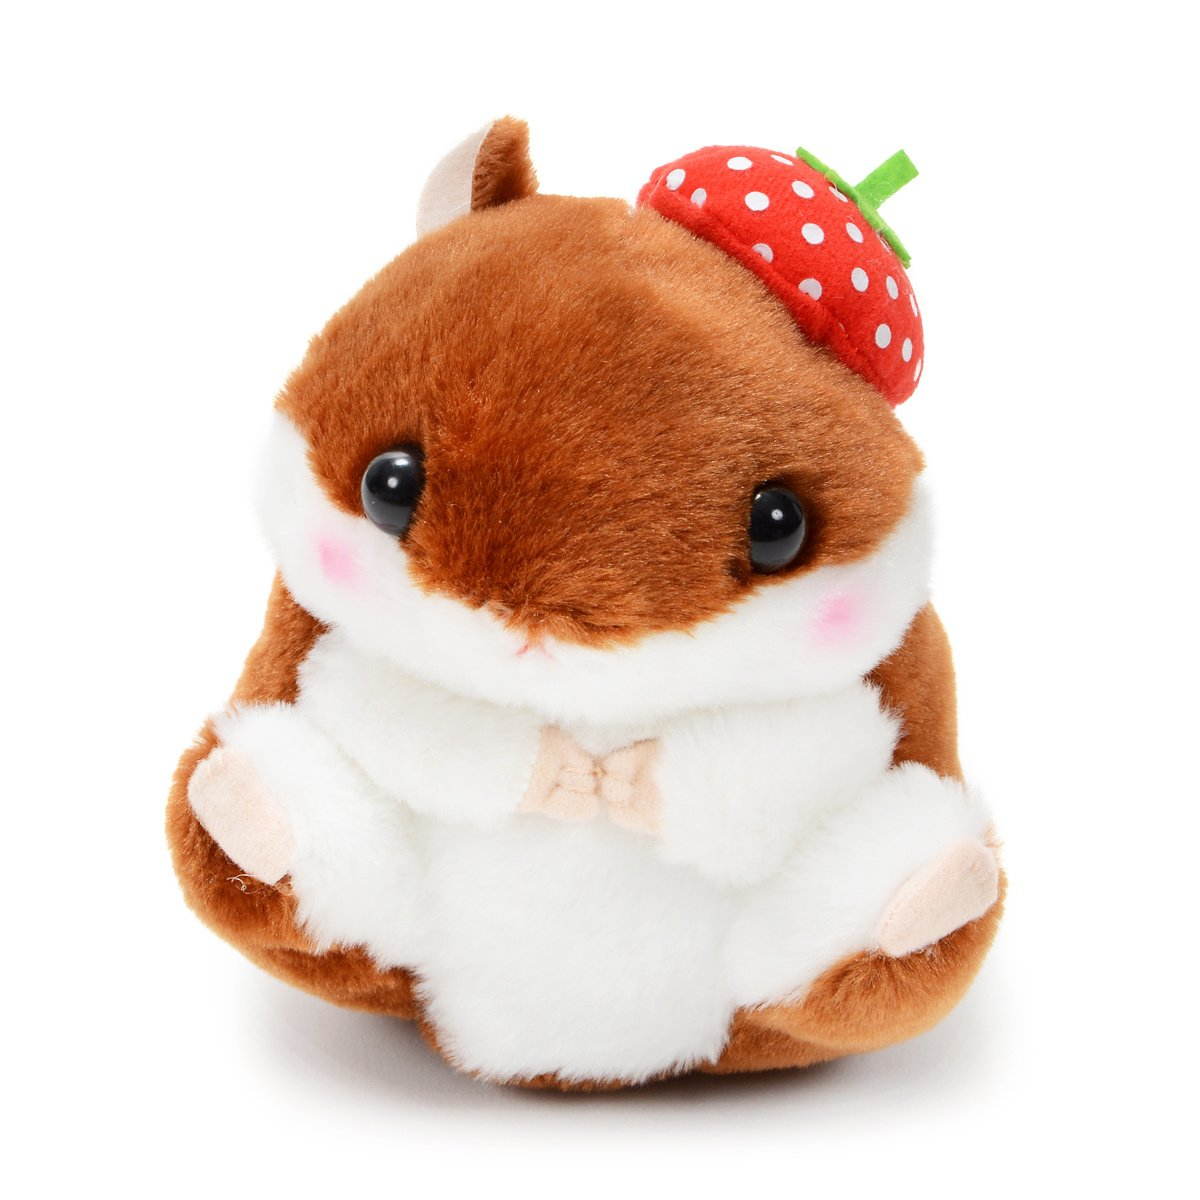 Plush Hamster, Amuse, Coroham Coron, Ichigo Hamster Plush Collection Chocoron, Brown, 5 Inches